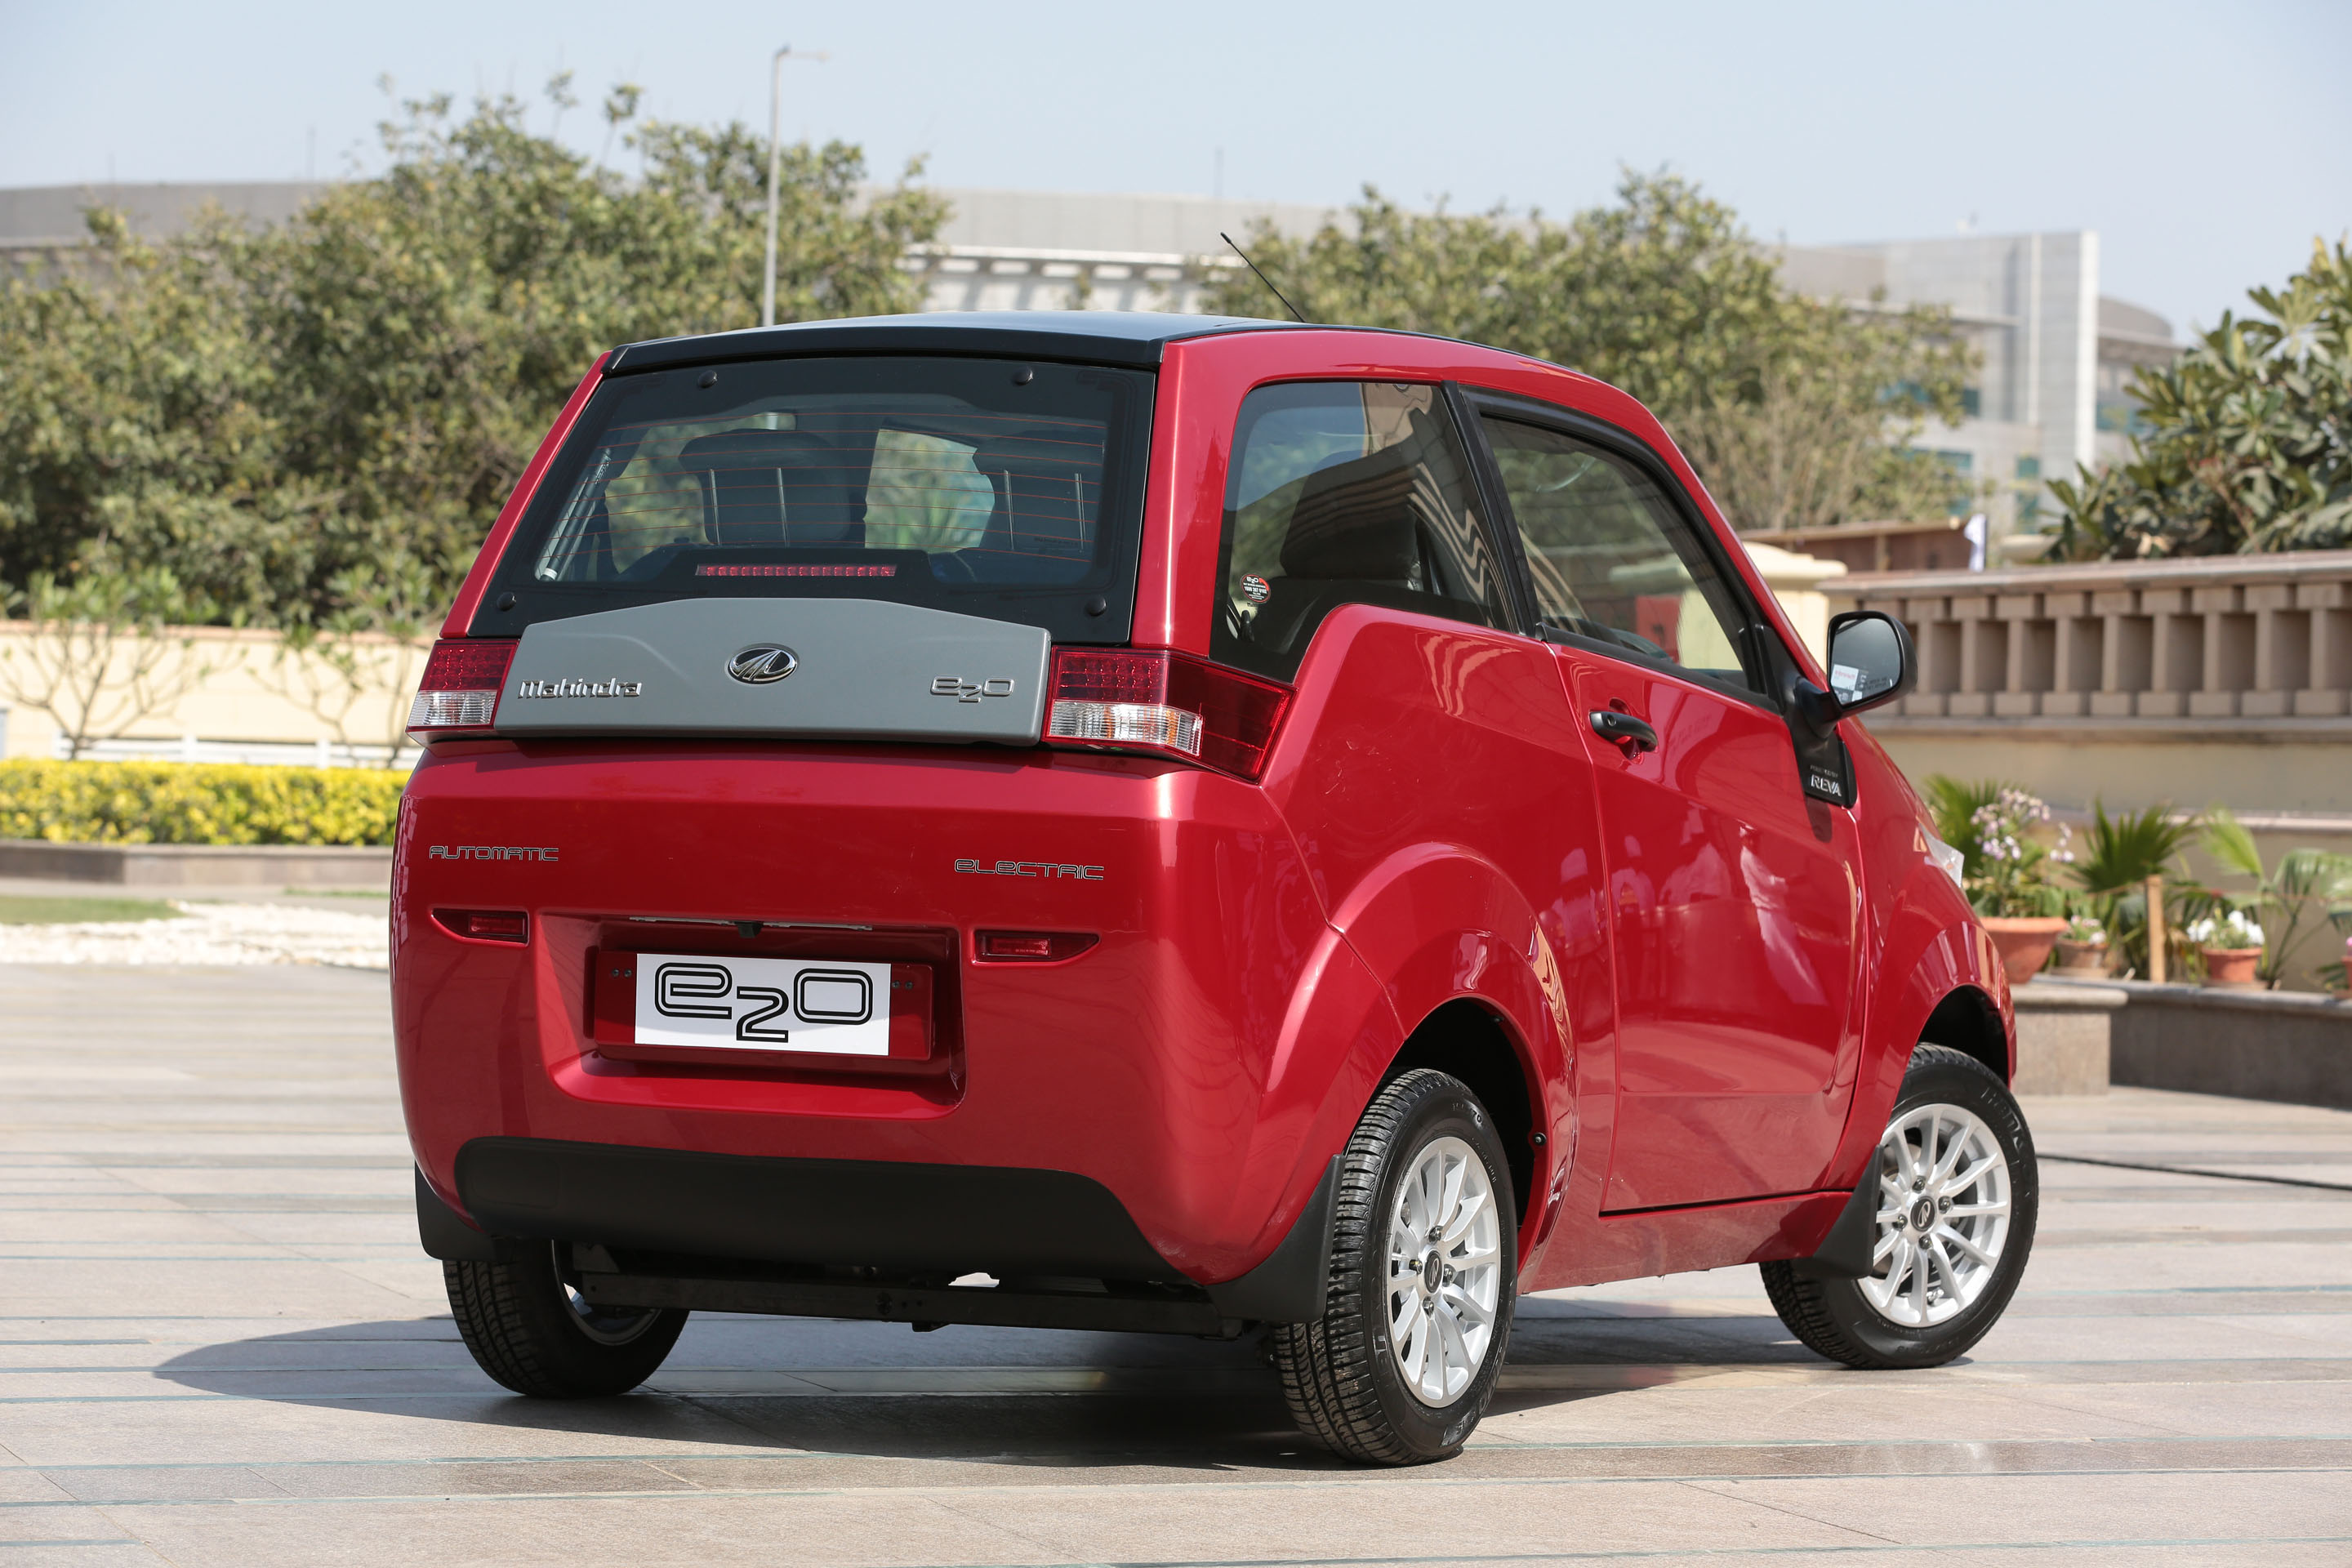 Mahindra E2o Detailed Photo Gallery Car Gallery Others